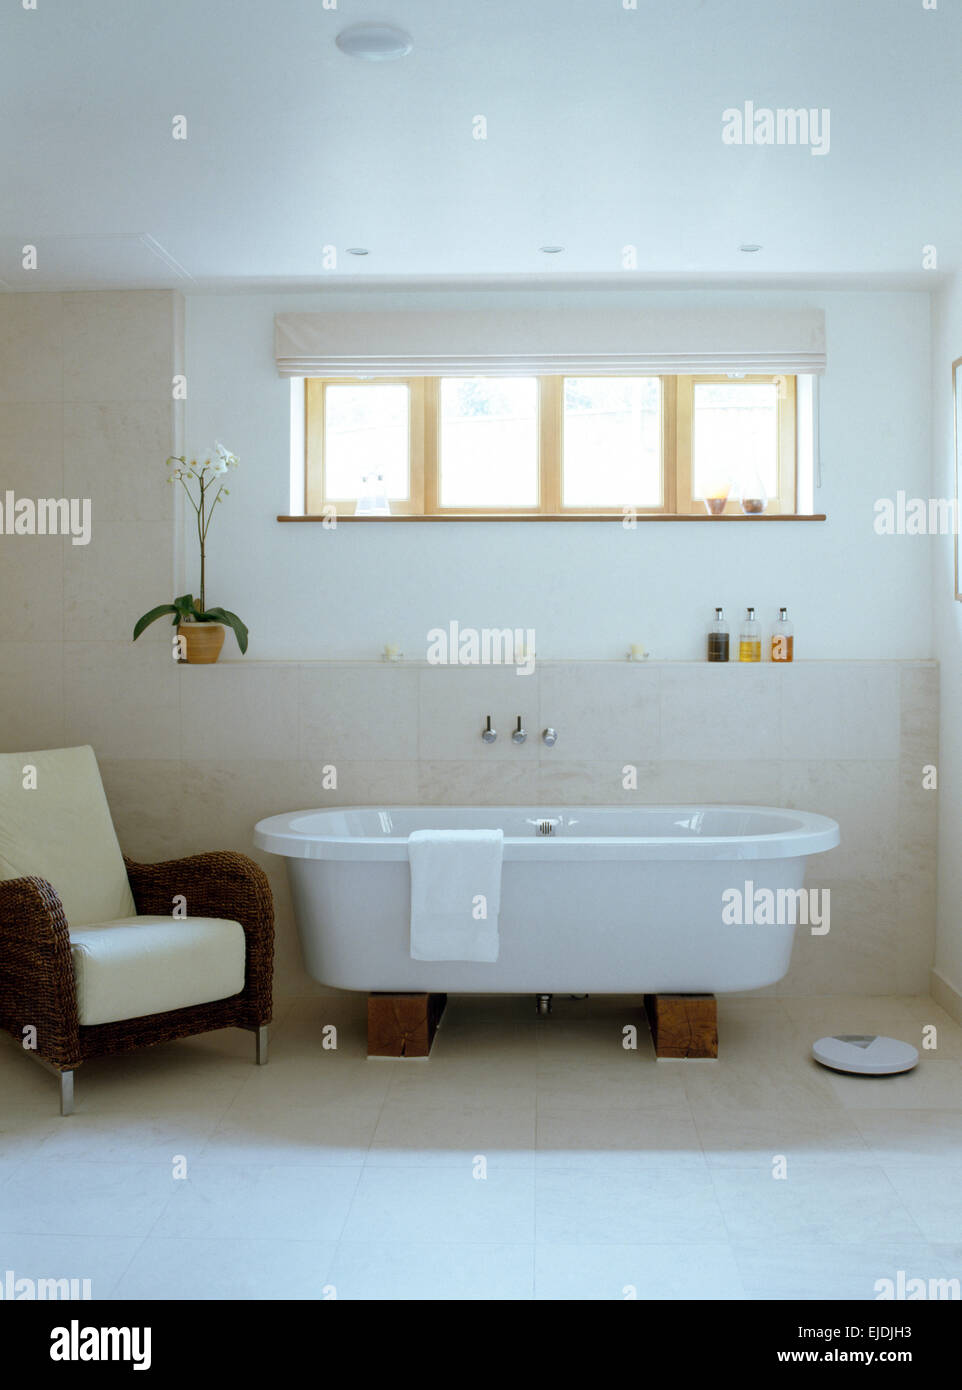 Roll Top Bath Stock Photos & Roll Top Bath Stock Images - Alamy